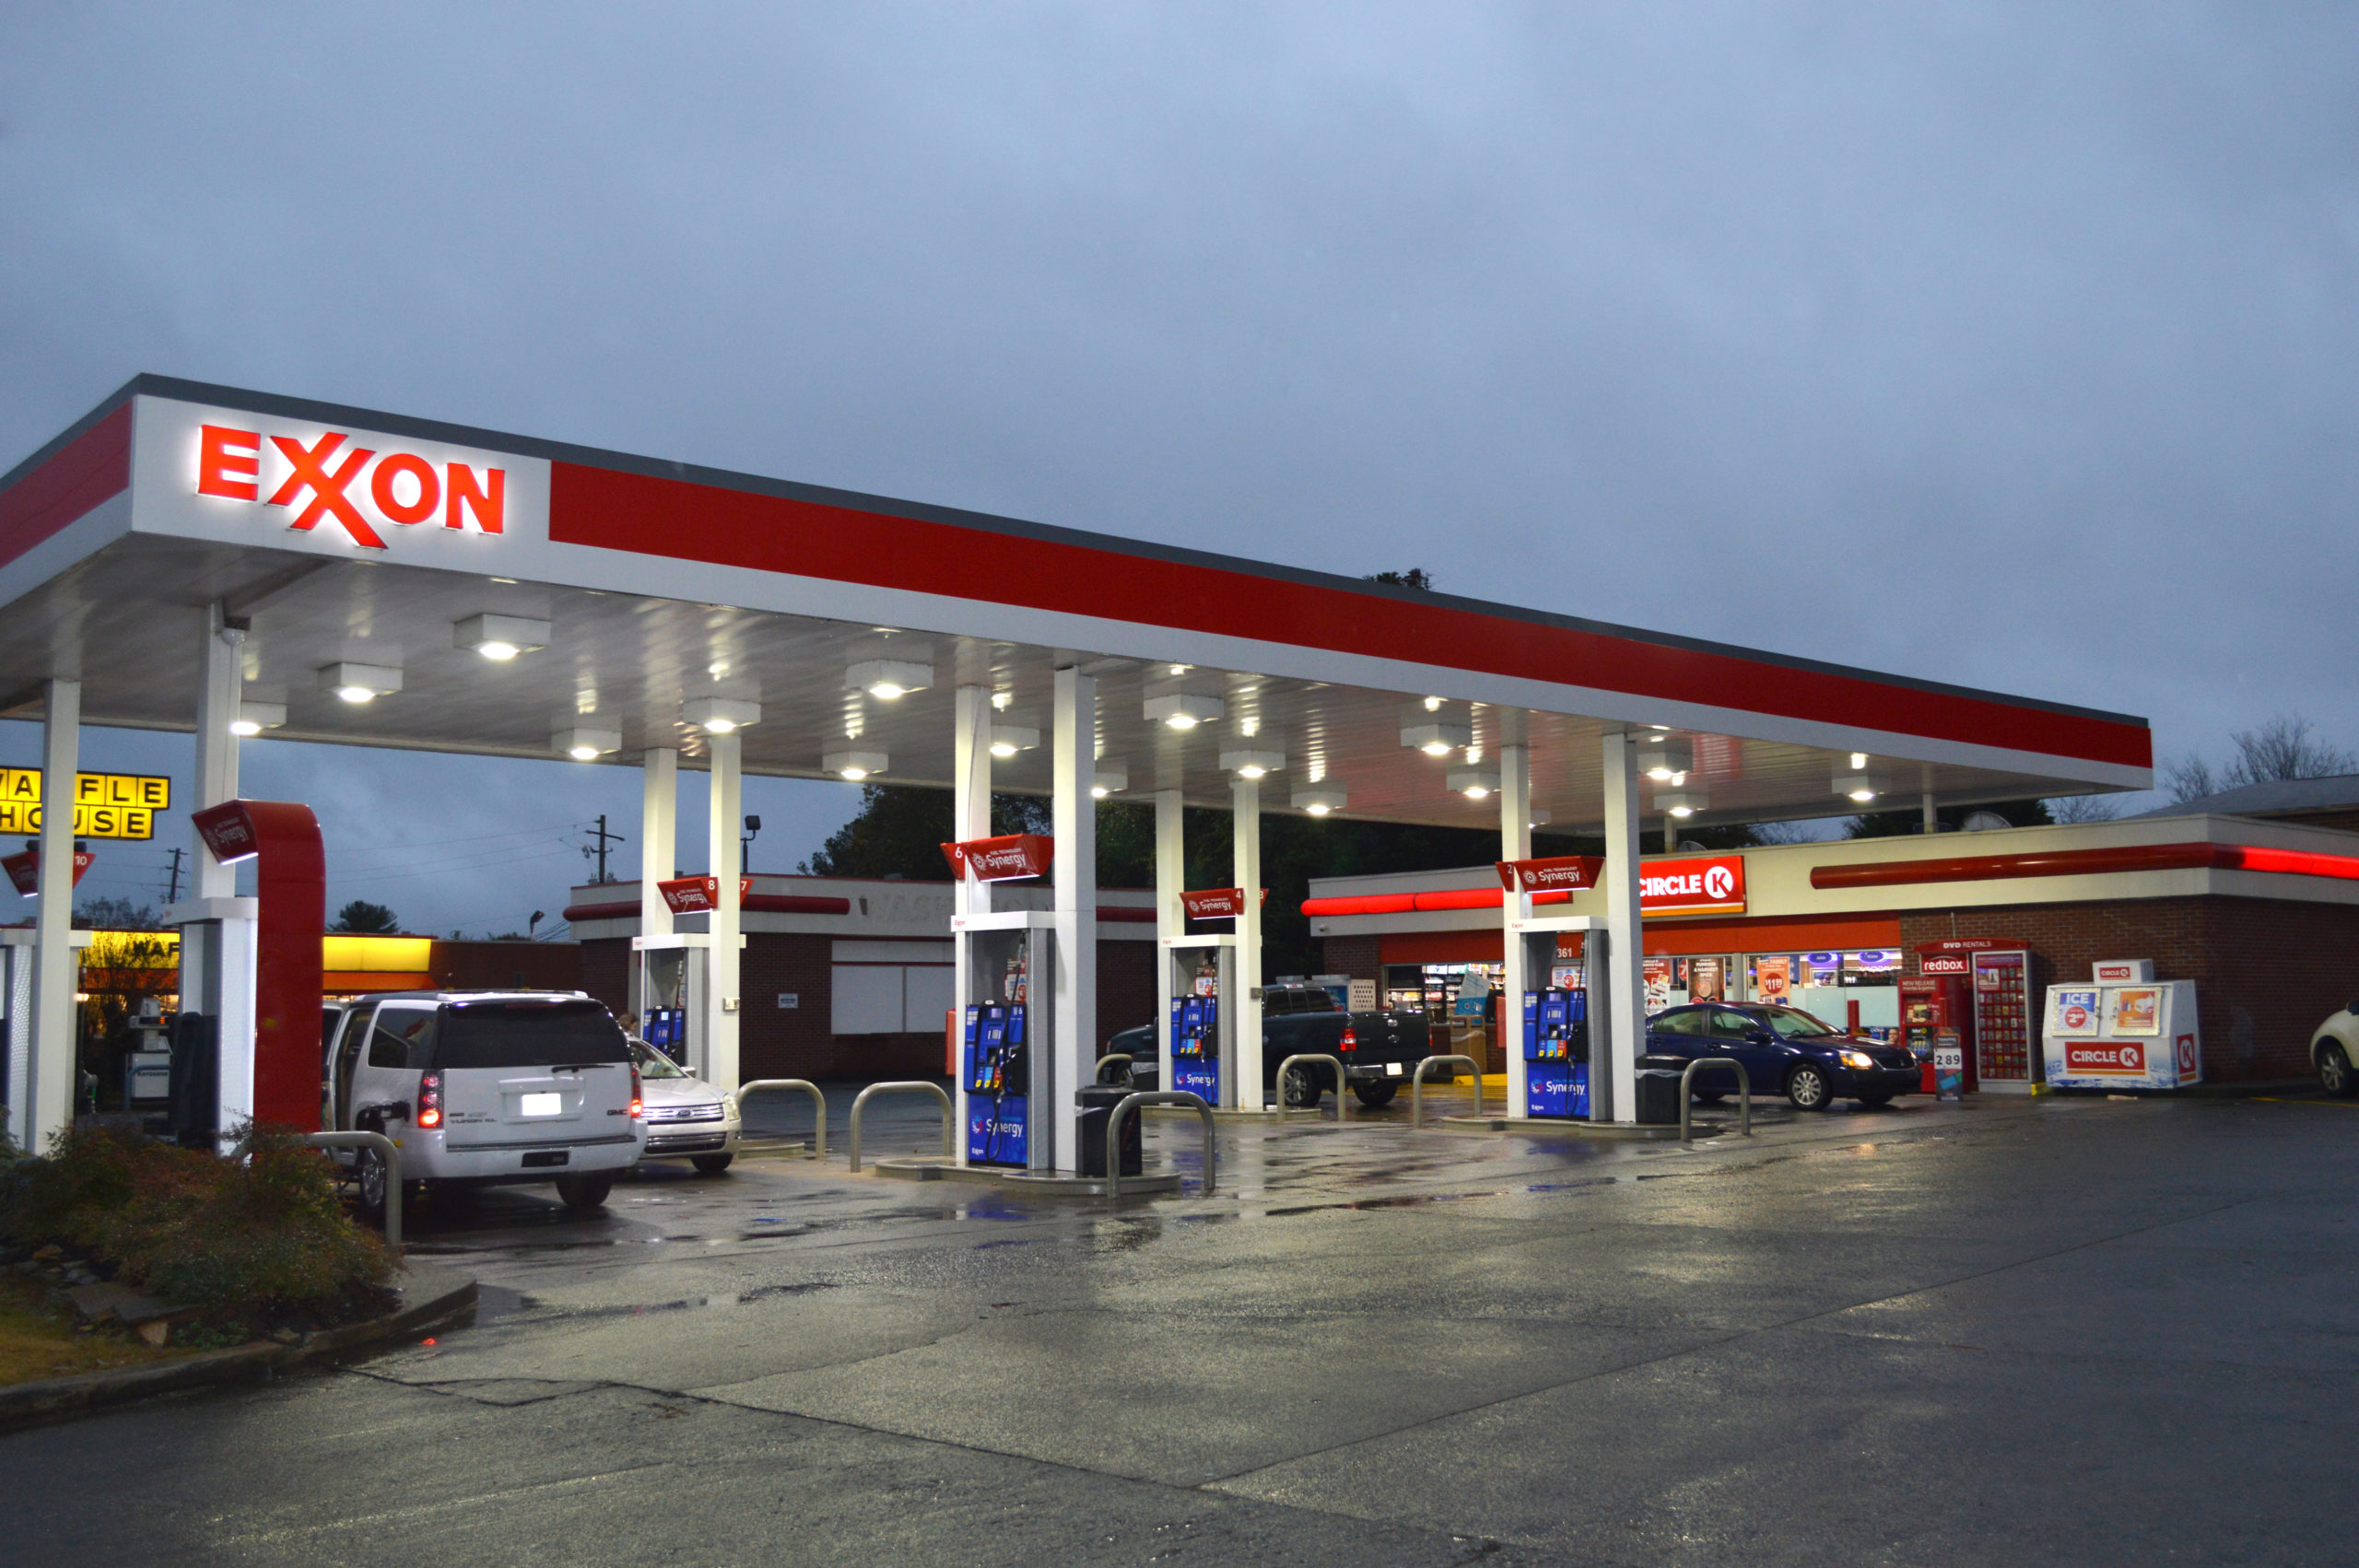 ExxonMobil Plans to Emit 21 Million Additional Tons of Carbon Per Year